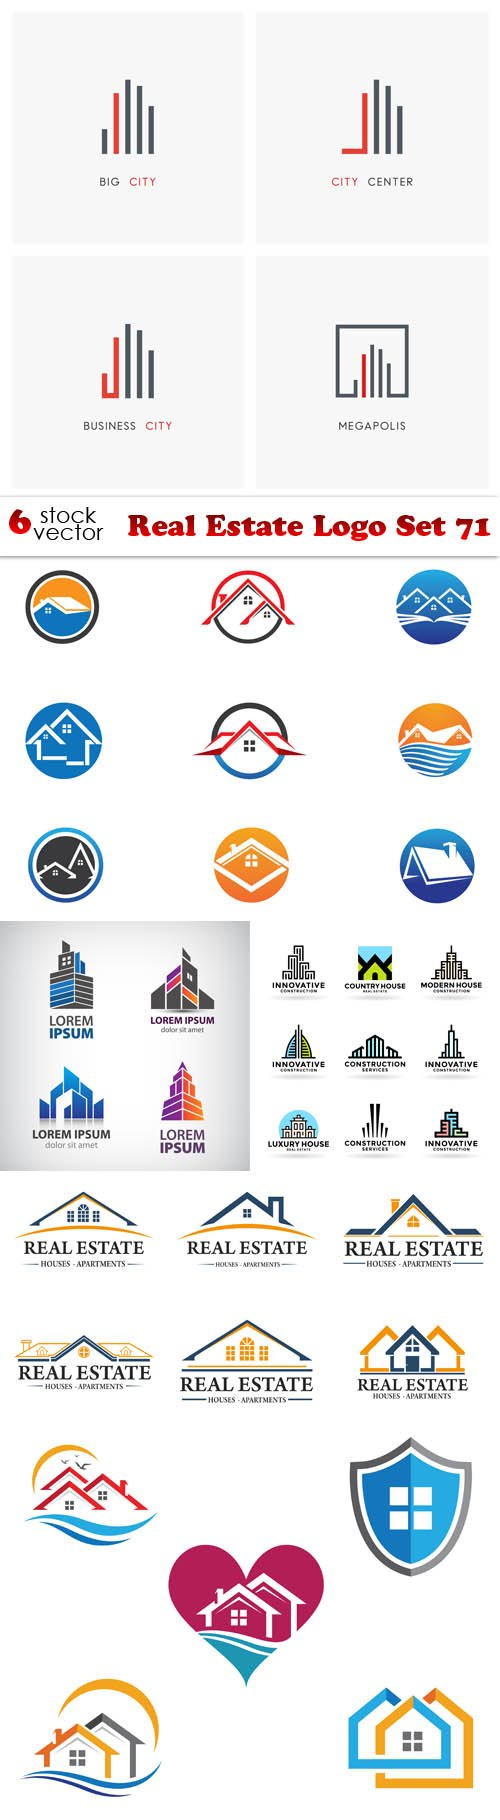 Vectors - Real Estate Logo Set 71